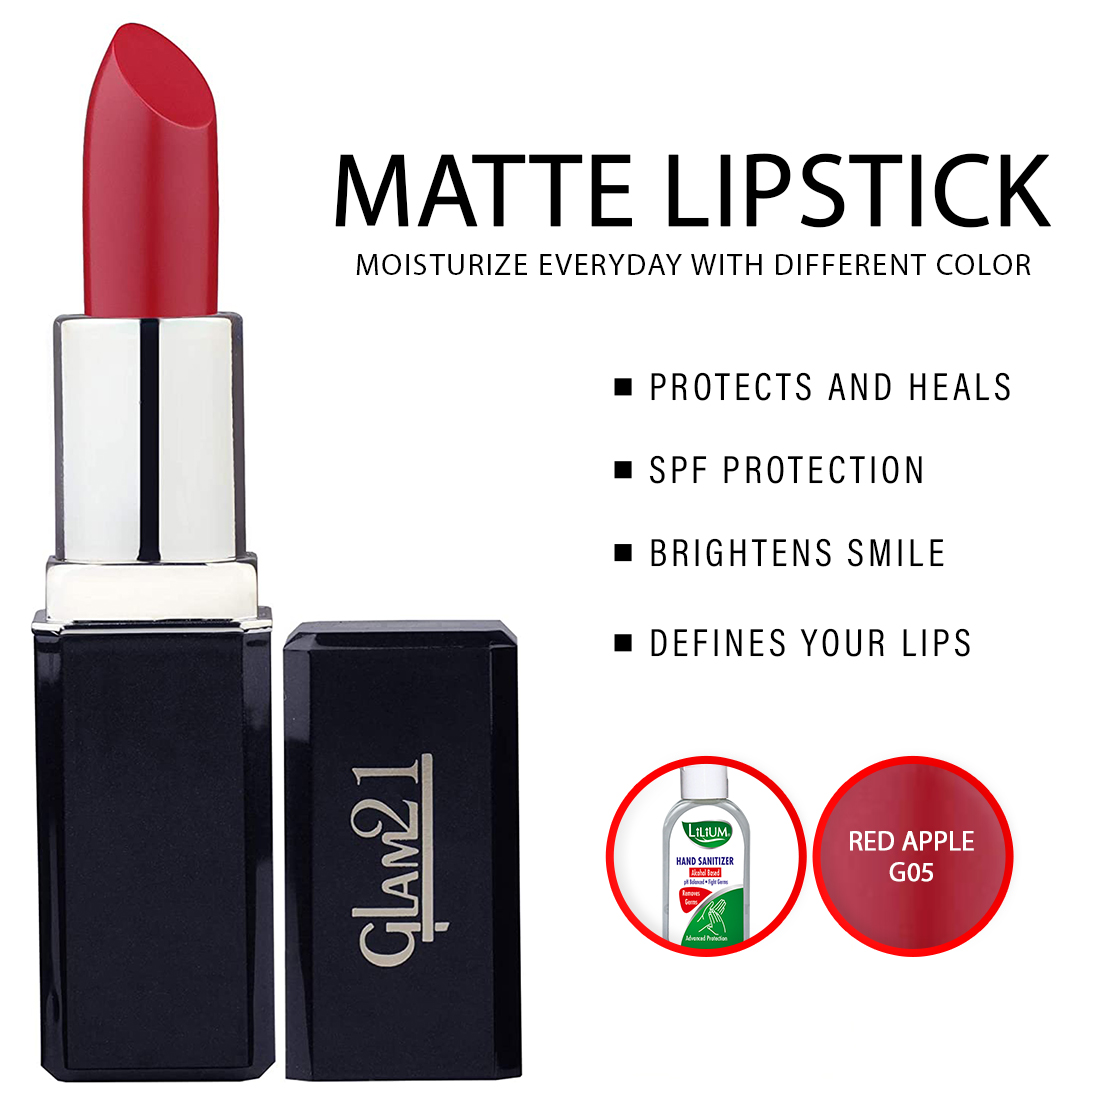 Glam21 Matte Lipstick, Red Apple (LP171-G05) 3.5g, With Lilium Hand Cleanser